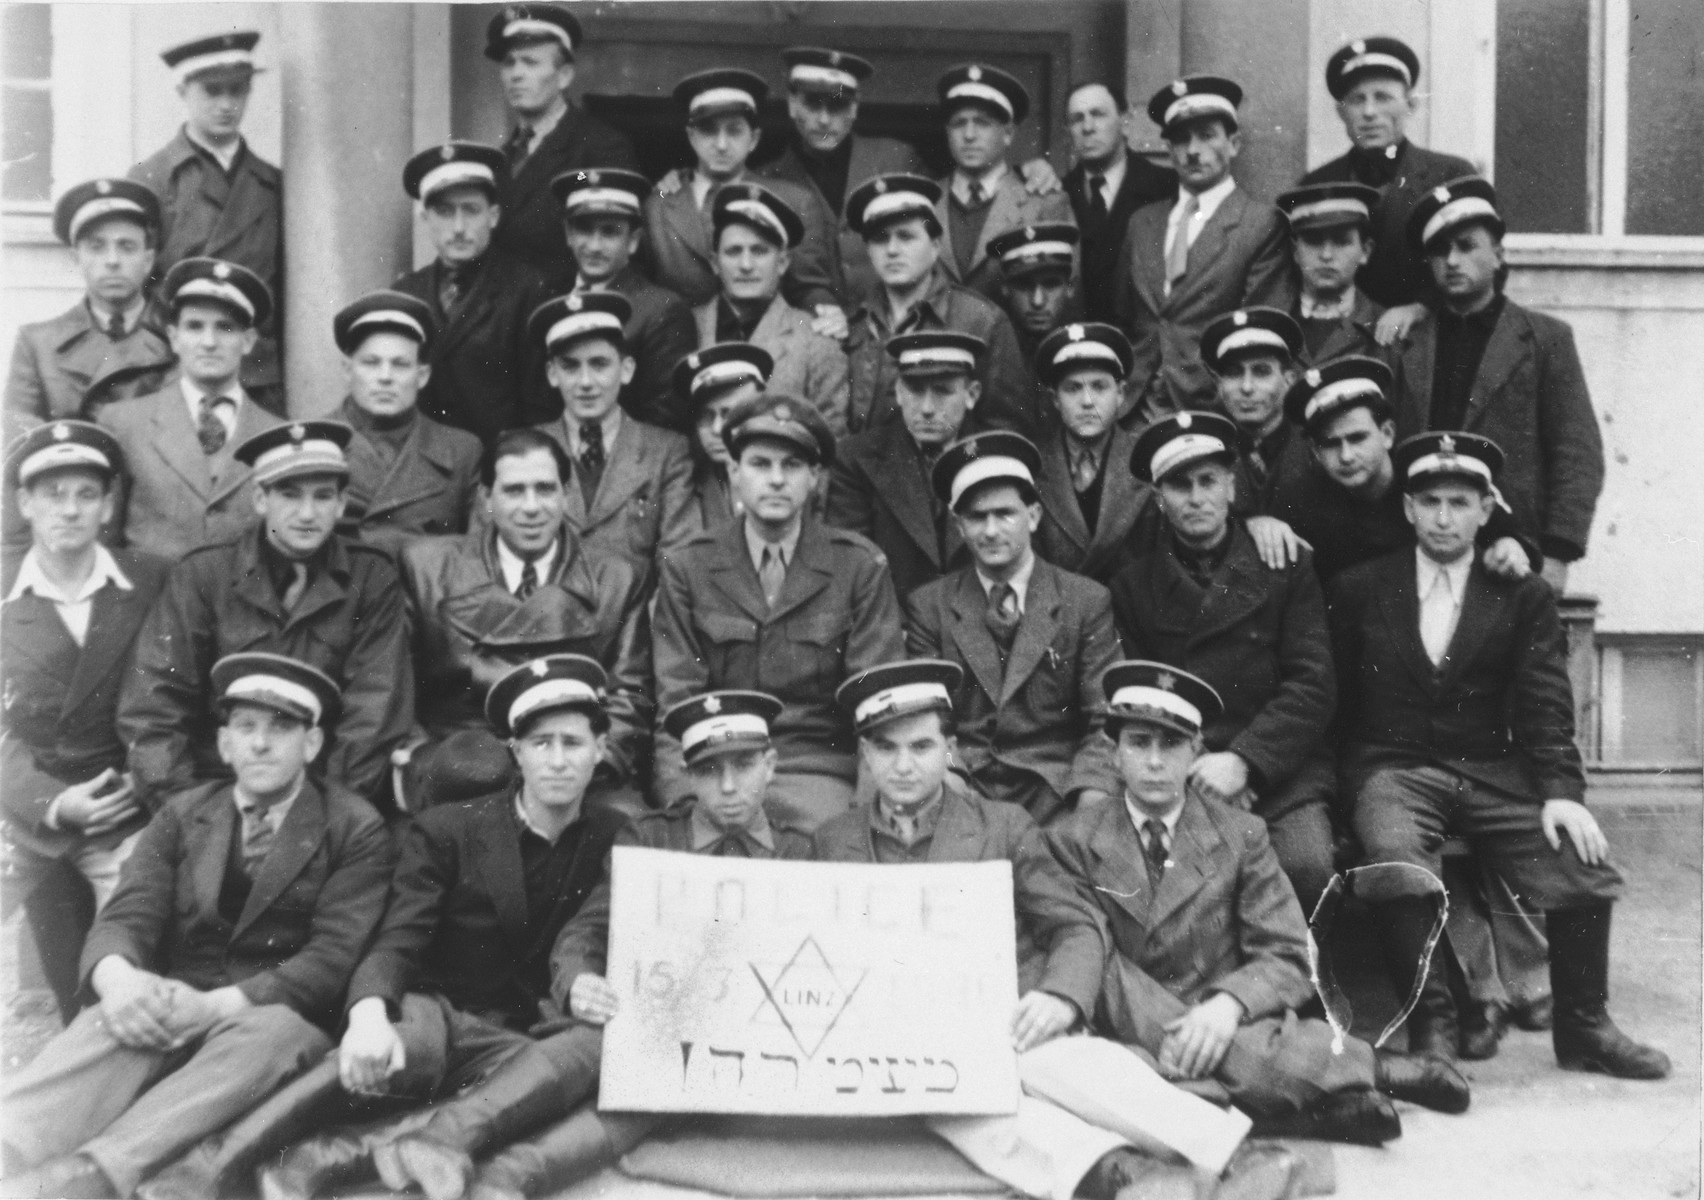 Group portrait of the Jewish police in the Bindermichl displaced persons camp.  Among those pictured is Willie Abraham. is holding the sign on the right. He was born in Velki-Rokovec, Czechoslovakia on May 1st, 1925.  He survived Gusen in Mauthausen. Also pictured is Shimon (Sol) Wizel, seated to the right of Willie. Your message:: The man in the second row from the bottom, Josef Sterngast. (not wearing a hat) is pictured third from the left. He was from Krakow, Poland and on Schindler's List.